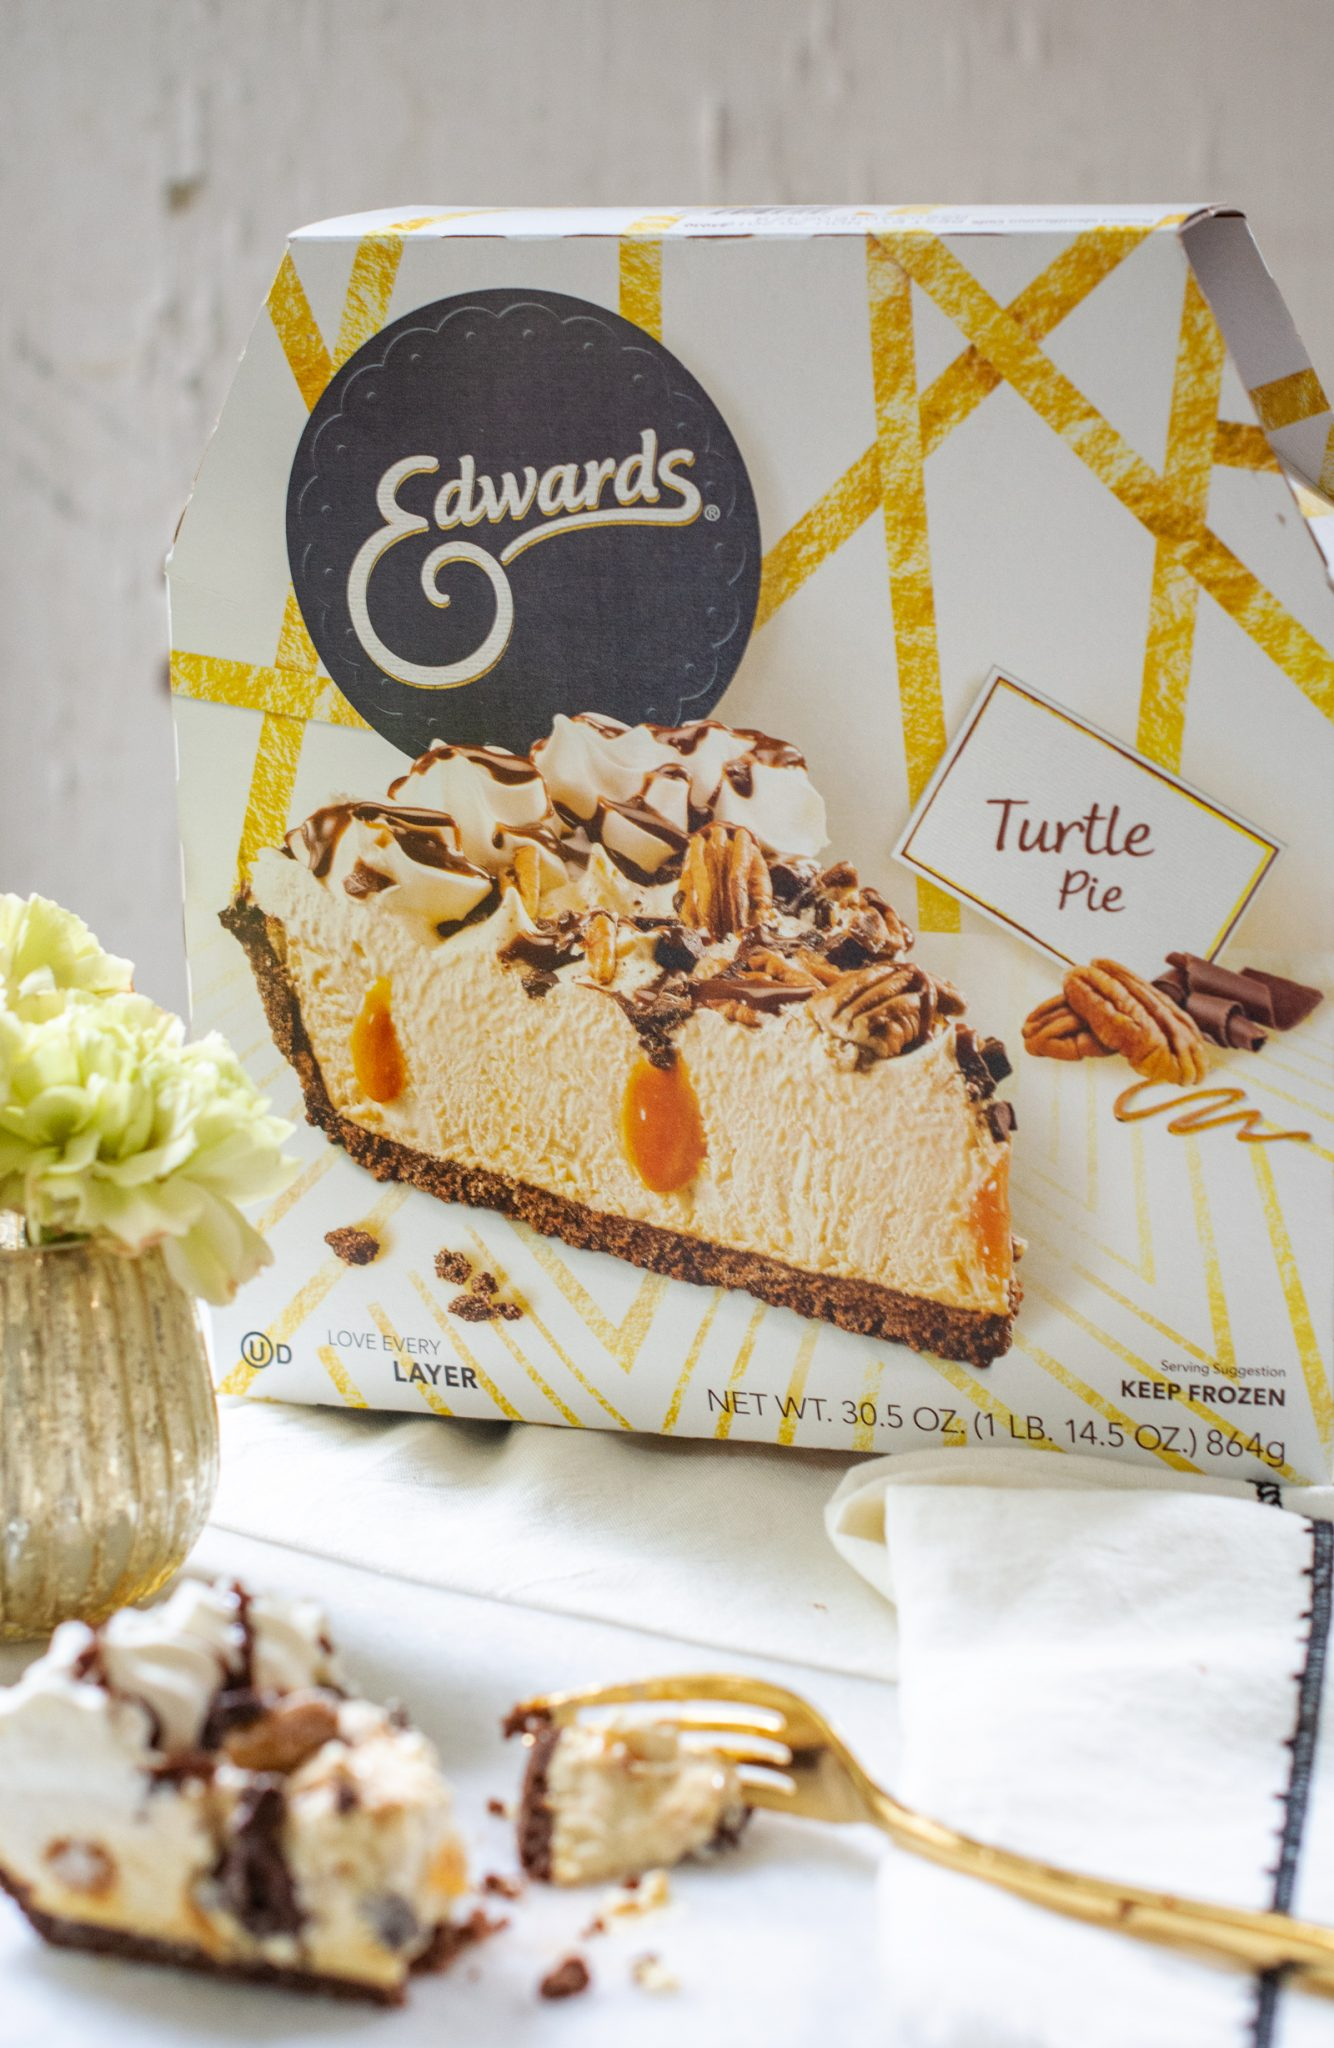 Edwards Desserts Turtle Pie package with slice of pie in foreground with gold fork